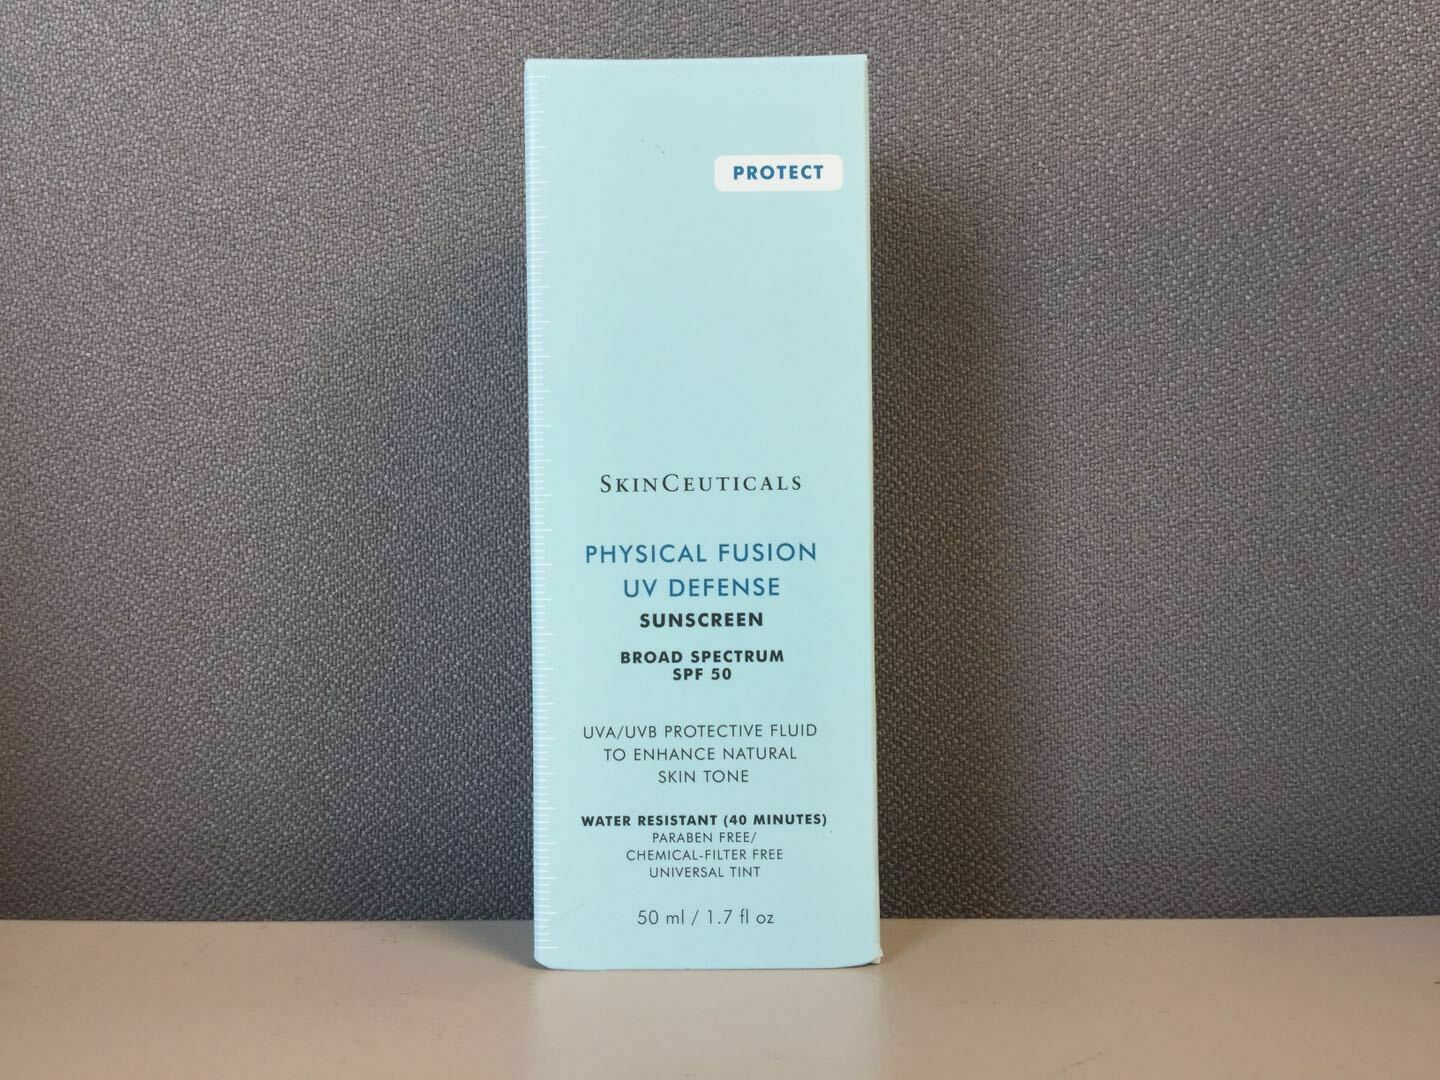 Skinceuticals Physical Fusion Uv Defense Spf 50 50 Ml 1.7 Oz Fresh 08/20